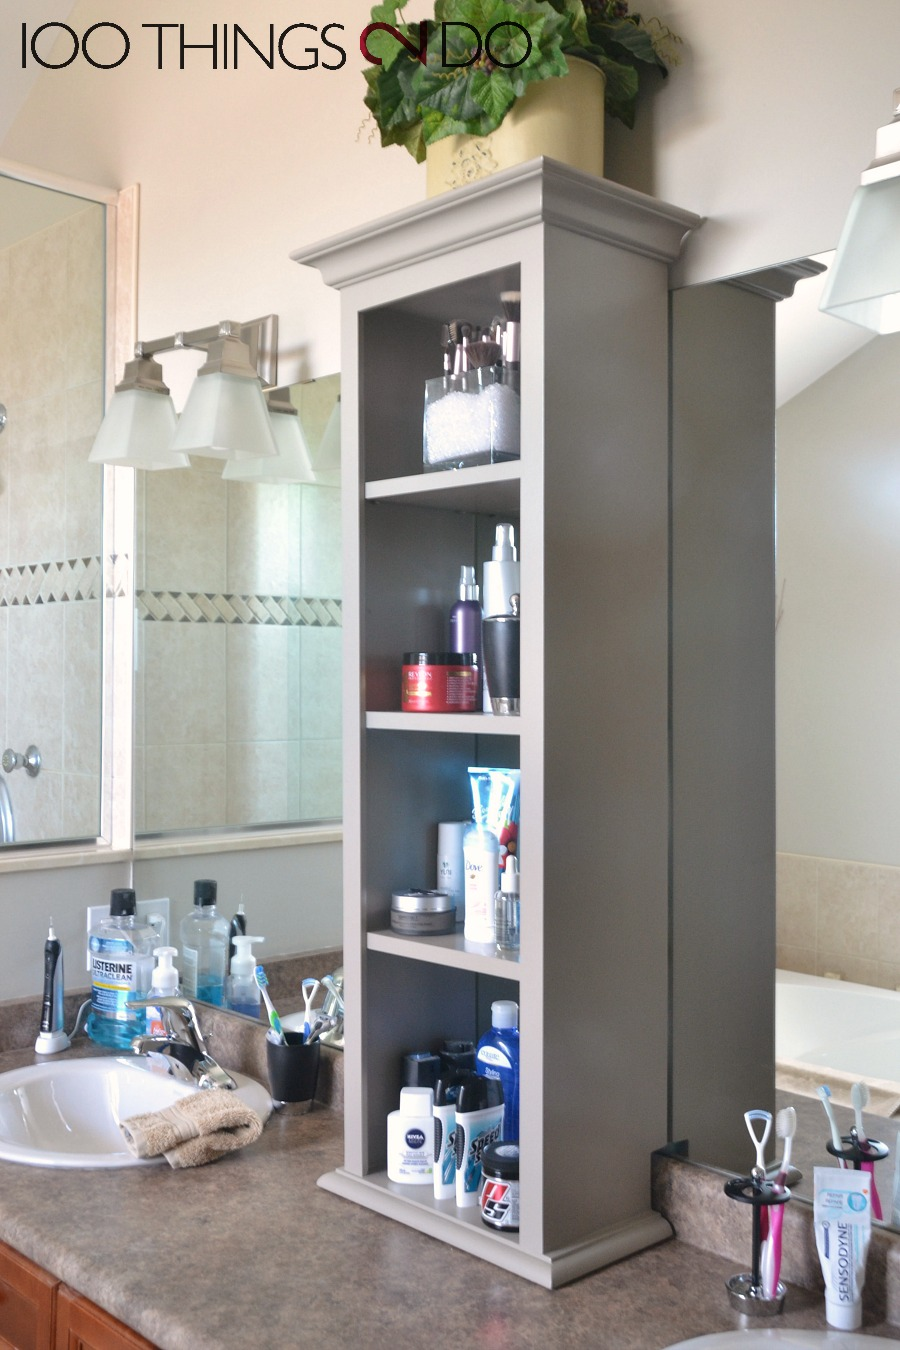 Bathroom Storage Tower | 100 Things 2 Do